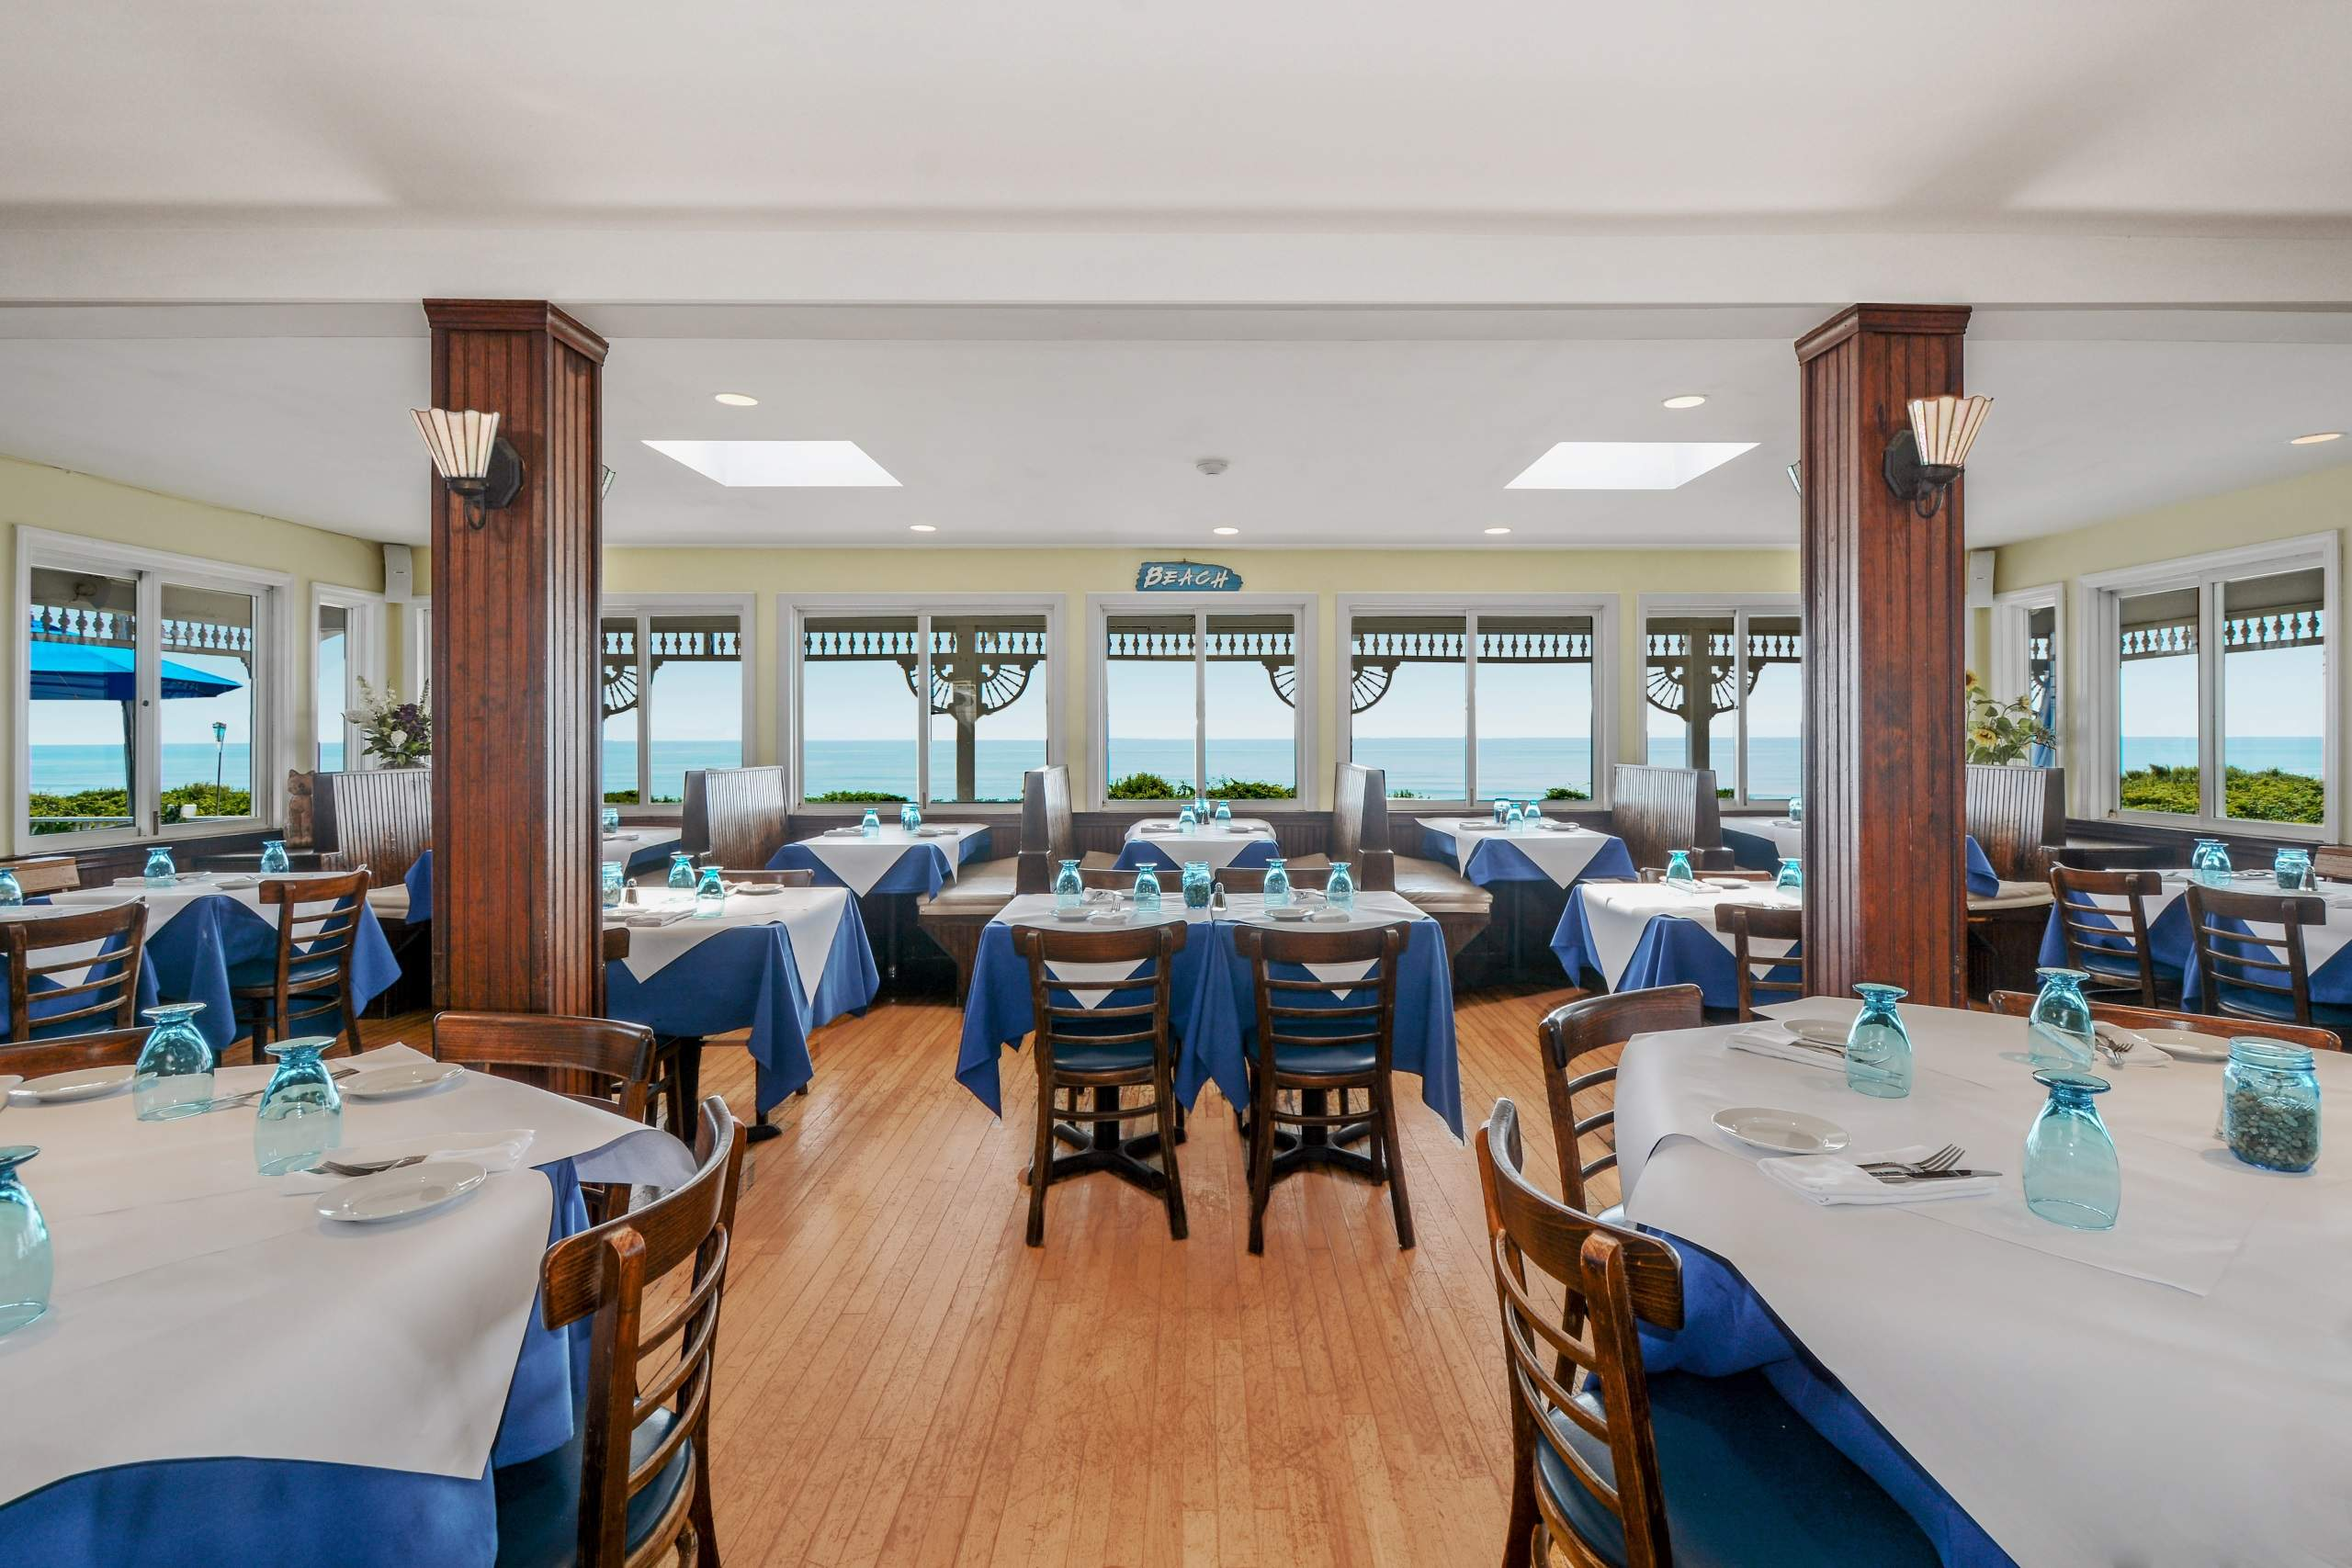 Surfside Inn - Restaurant